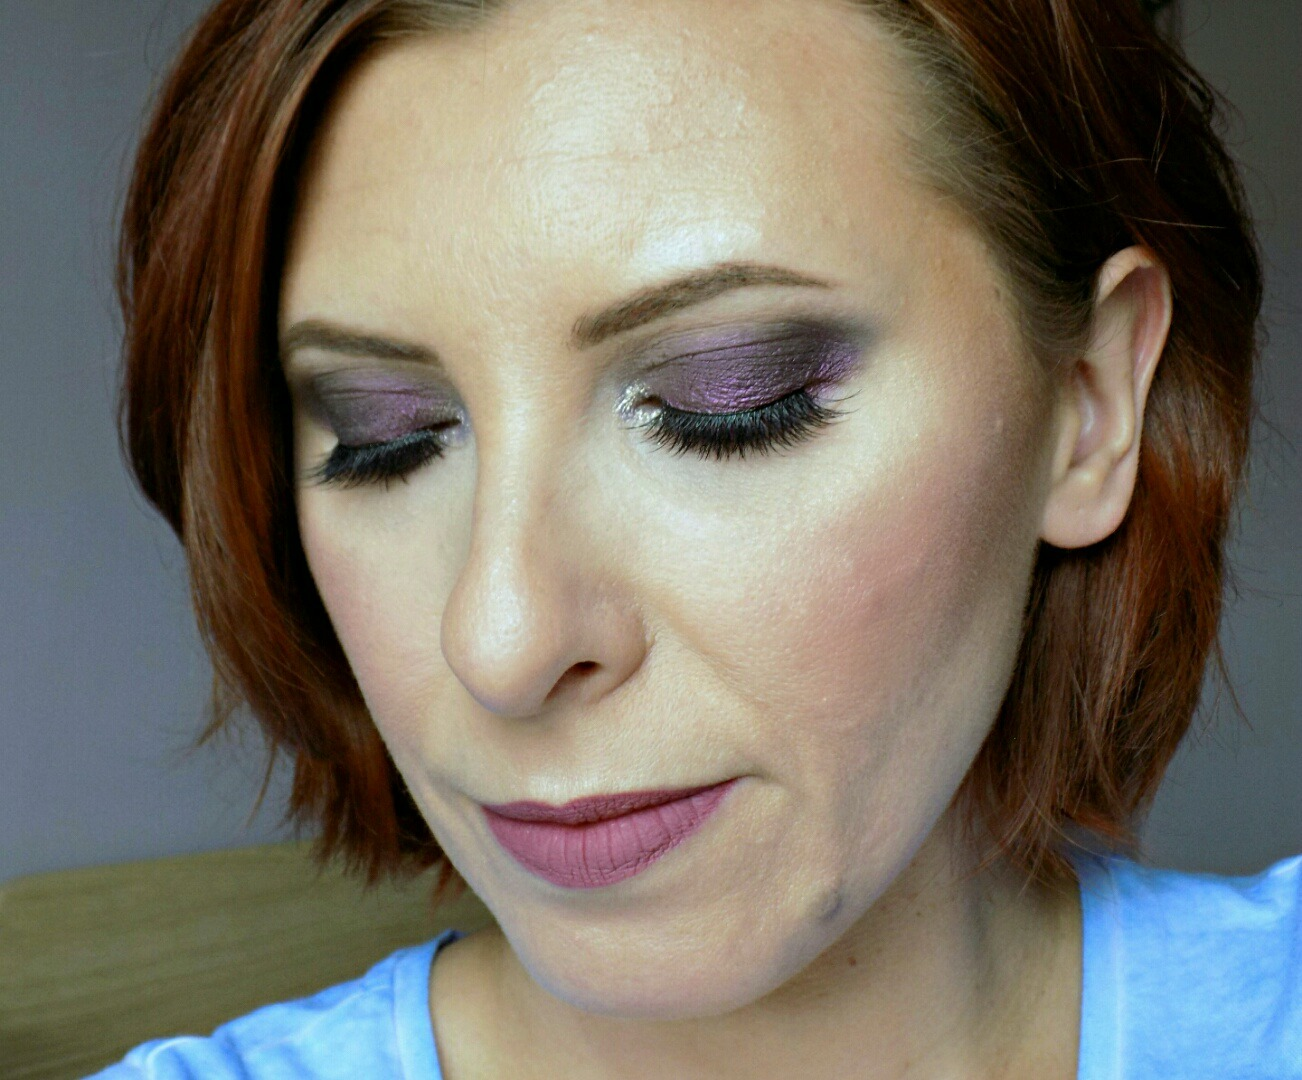 purple smokey eyes and mauve lips makeup look